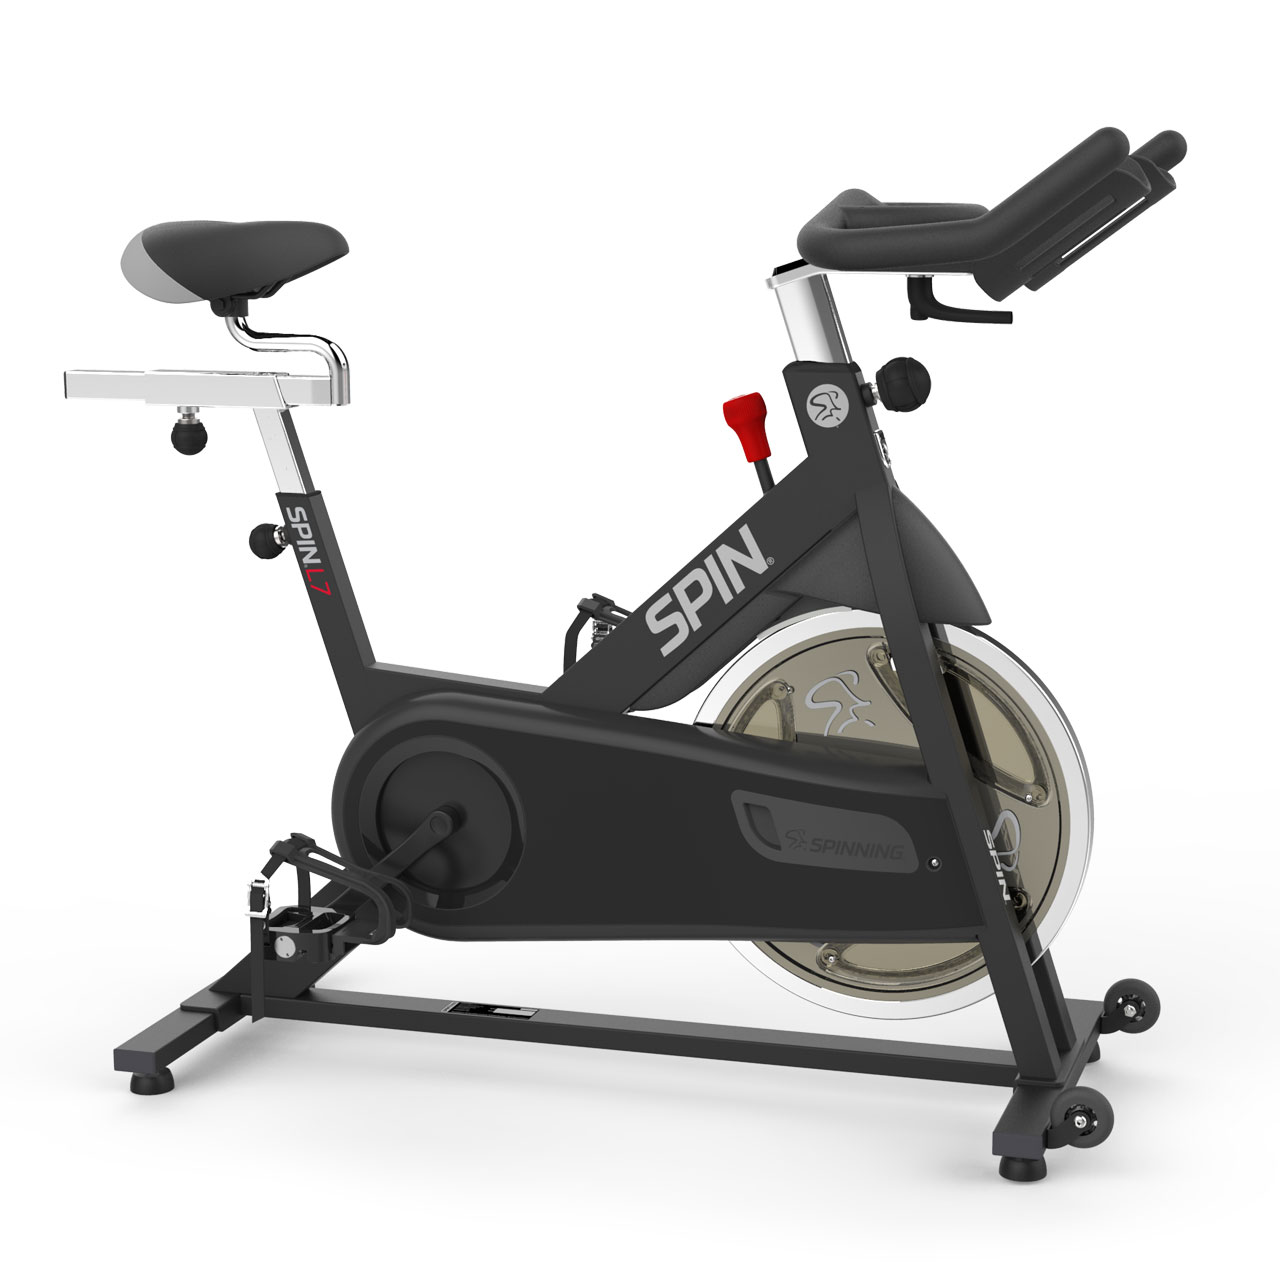 SPINNER L7 Spin Bike x 4 DVDs Exercise Bike by Mad Dogg